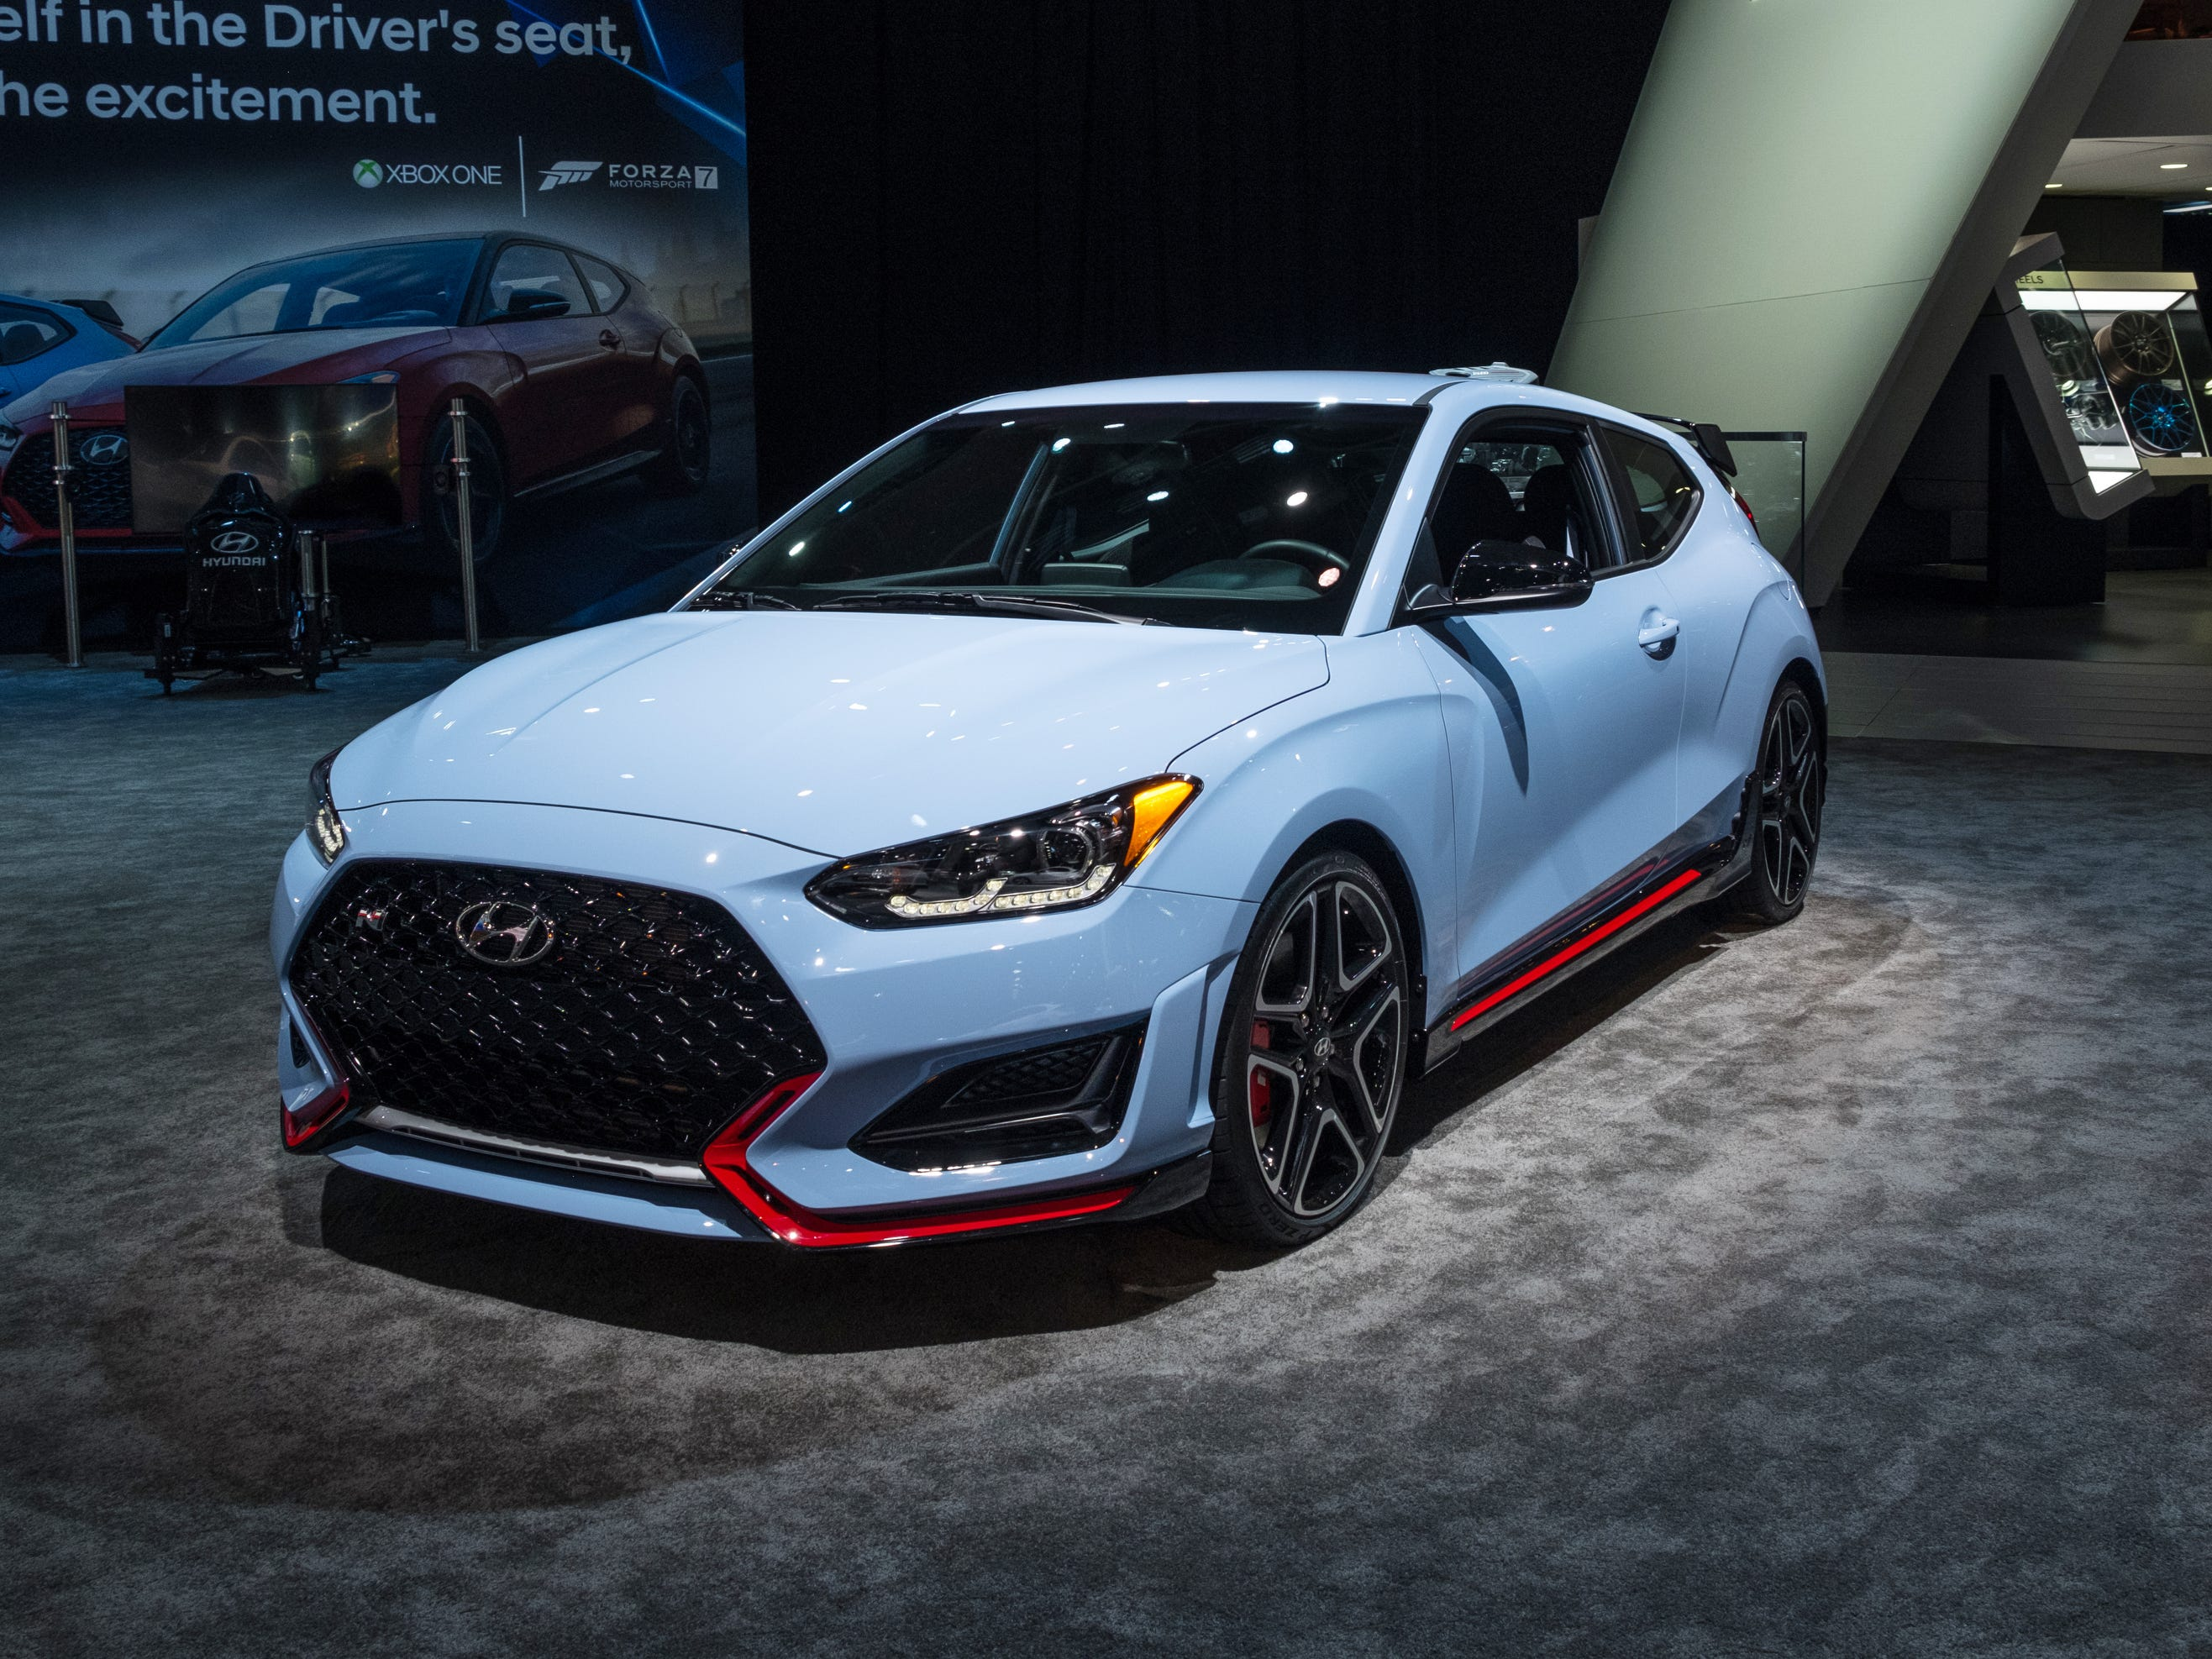 2019 Veloster N sits on display during the 2019 North American International Auto Show held at Cobo Center in downtown Detroit on Tuesday, Jan. 15, 2019.  (Via OlyDrop)